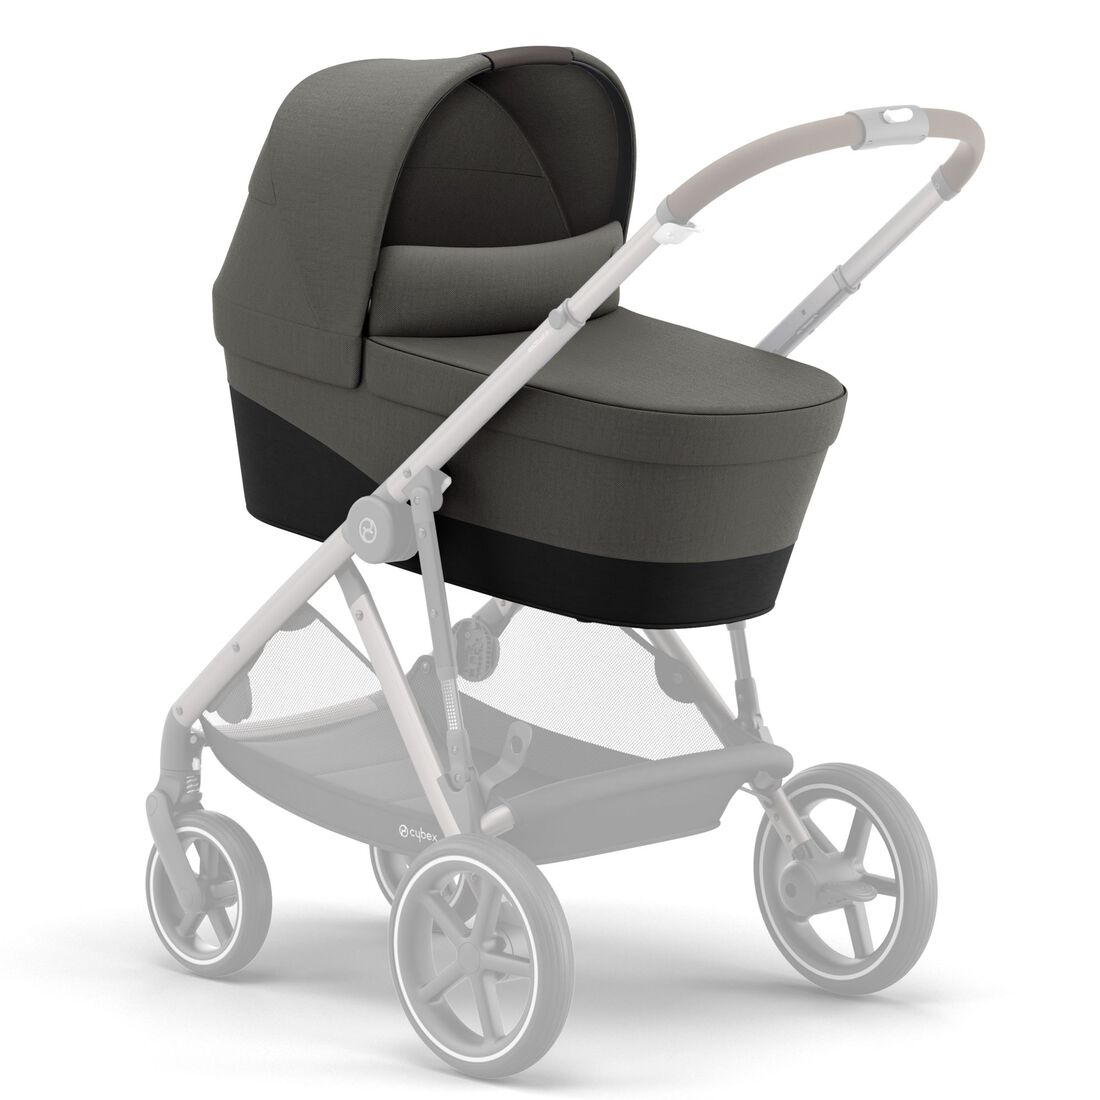 CYBEX Gazelle S Cot - Soho Grey in Soho Grey large Bild 5